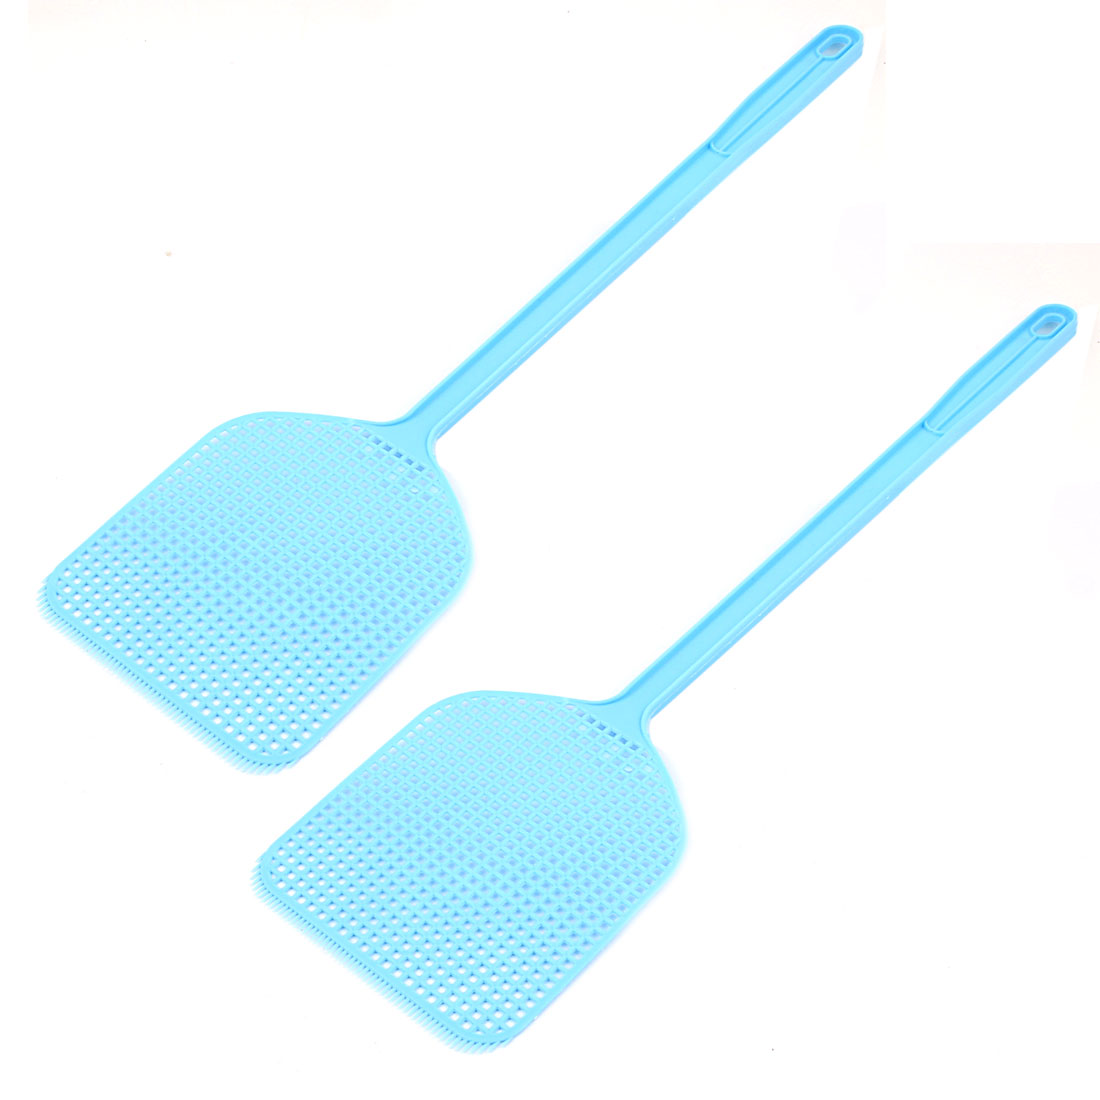 Plastic Hand Held Mosquito Fly Bug Pest Swatter 44cm Long Blue 2 PCS